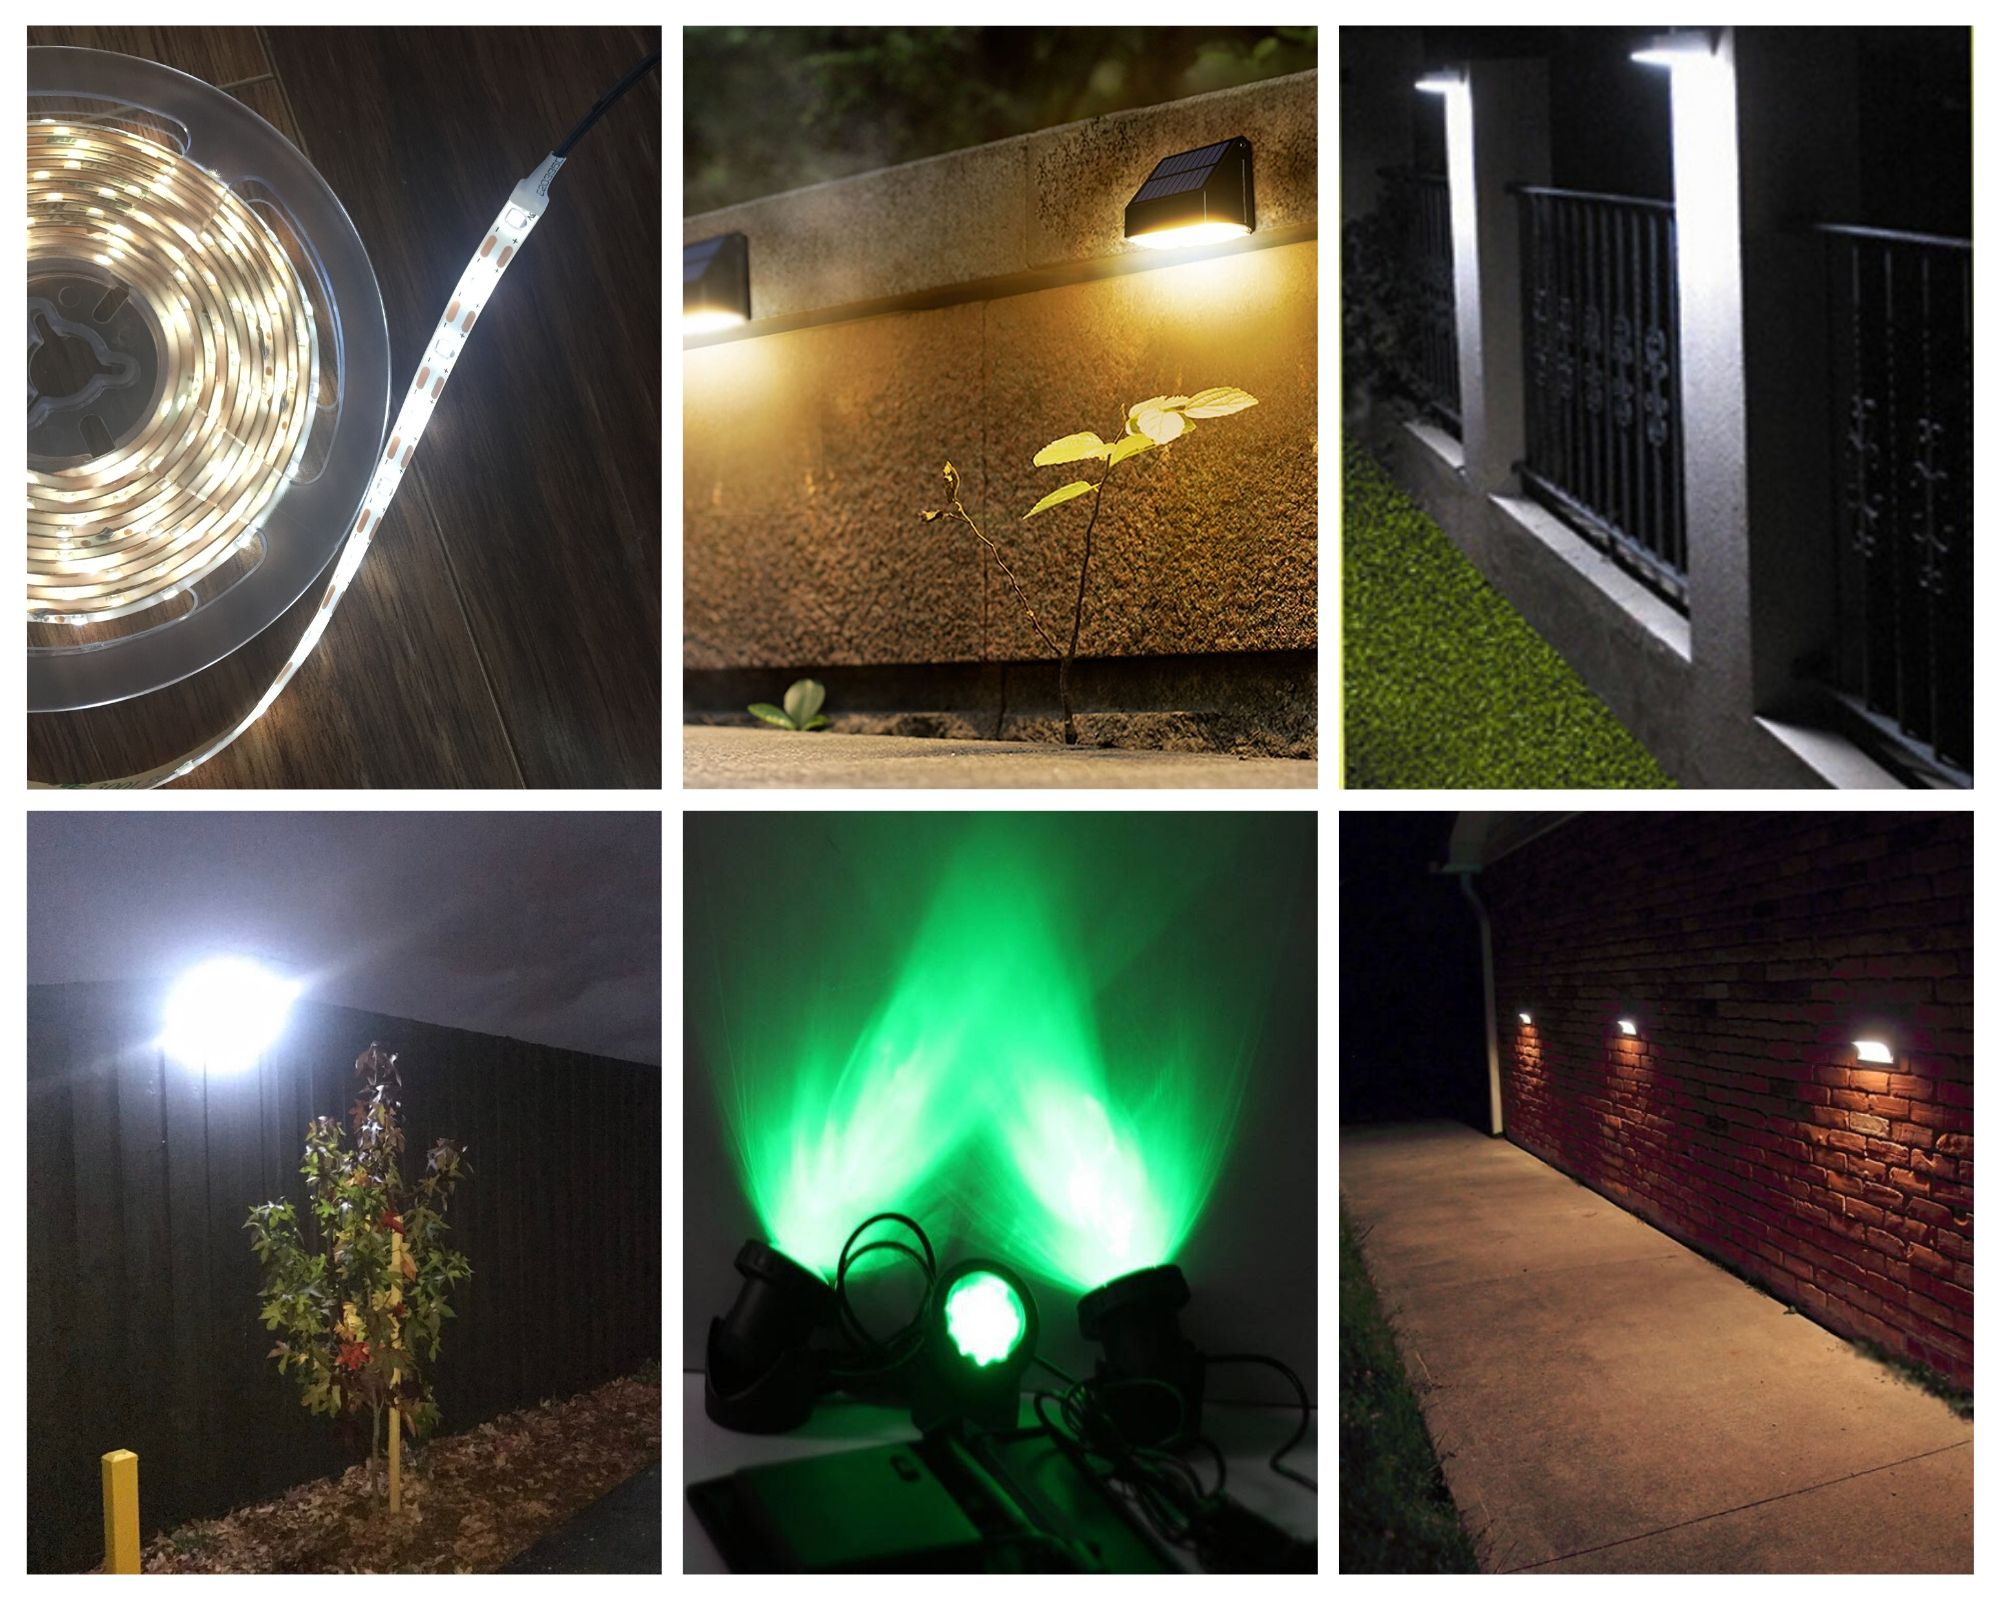 Solar Lamp LED Ever-Bright Light Lamp Solar Bulbs for Countryard Wall Fence